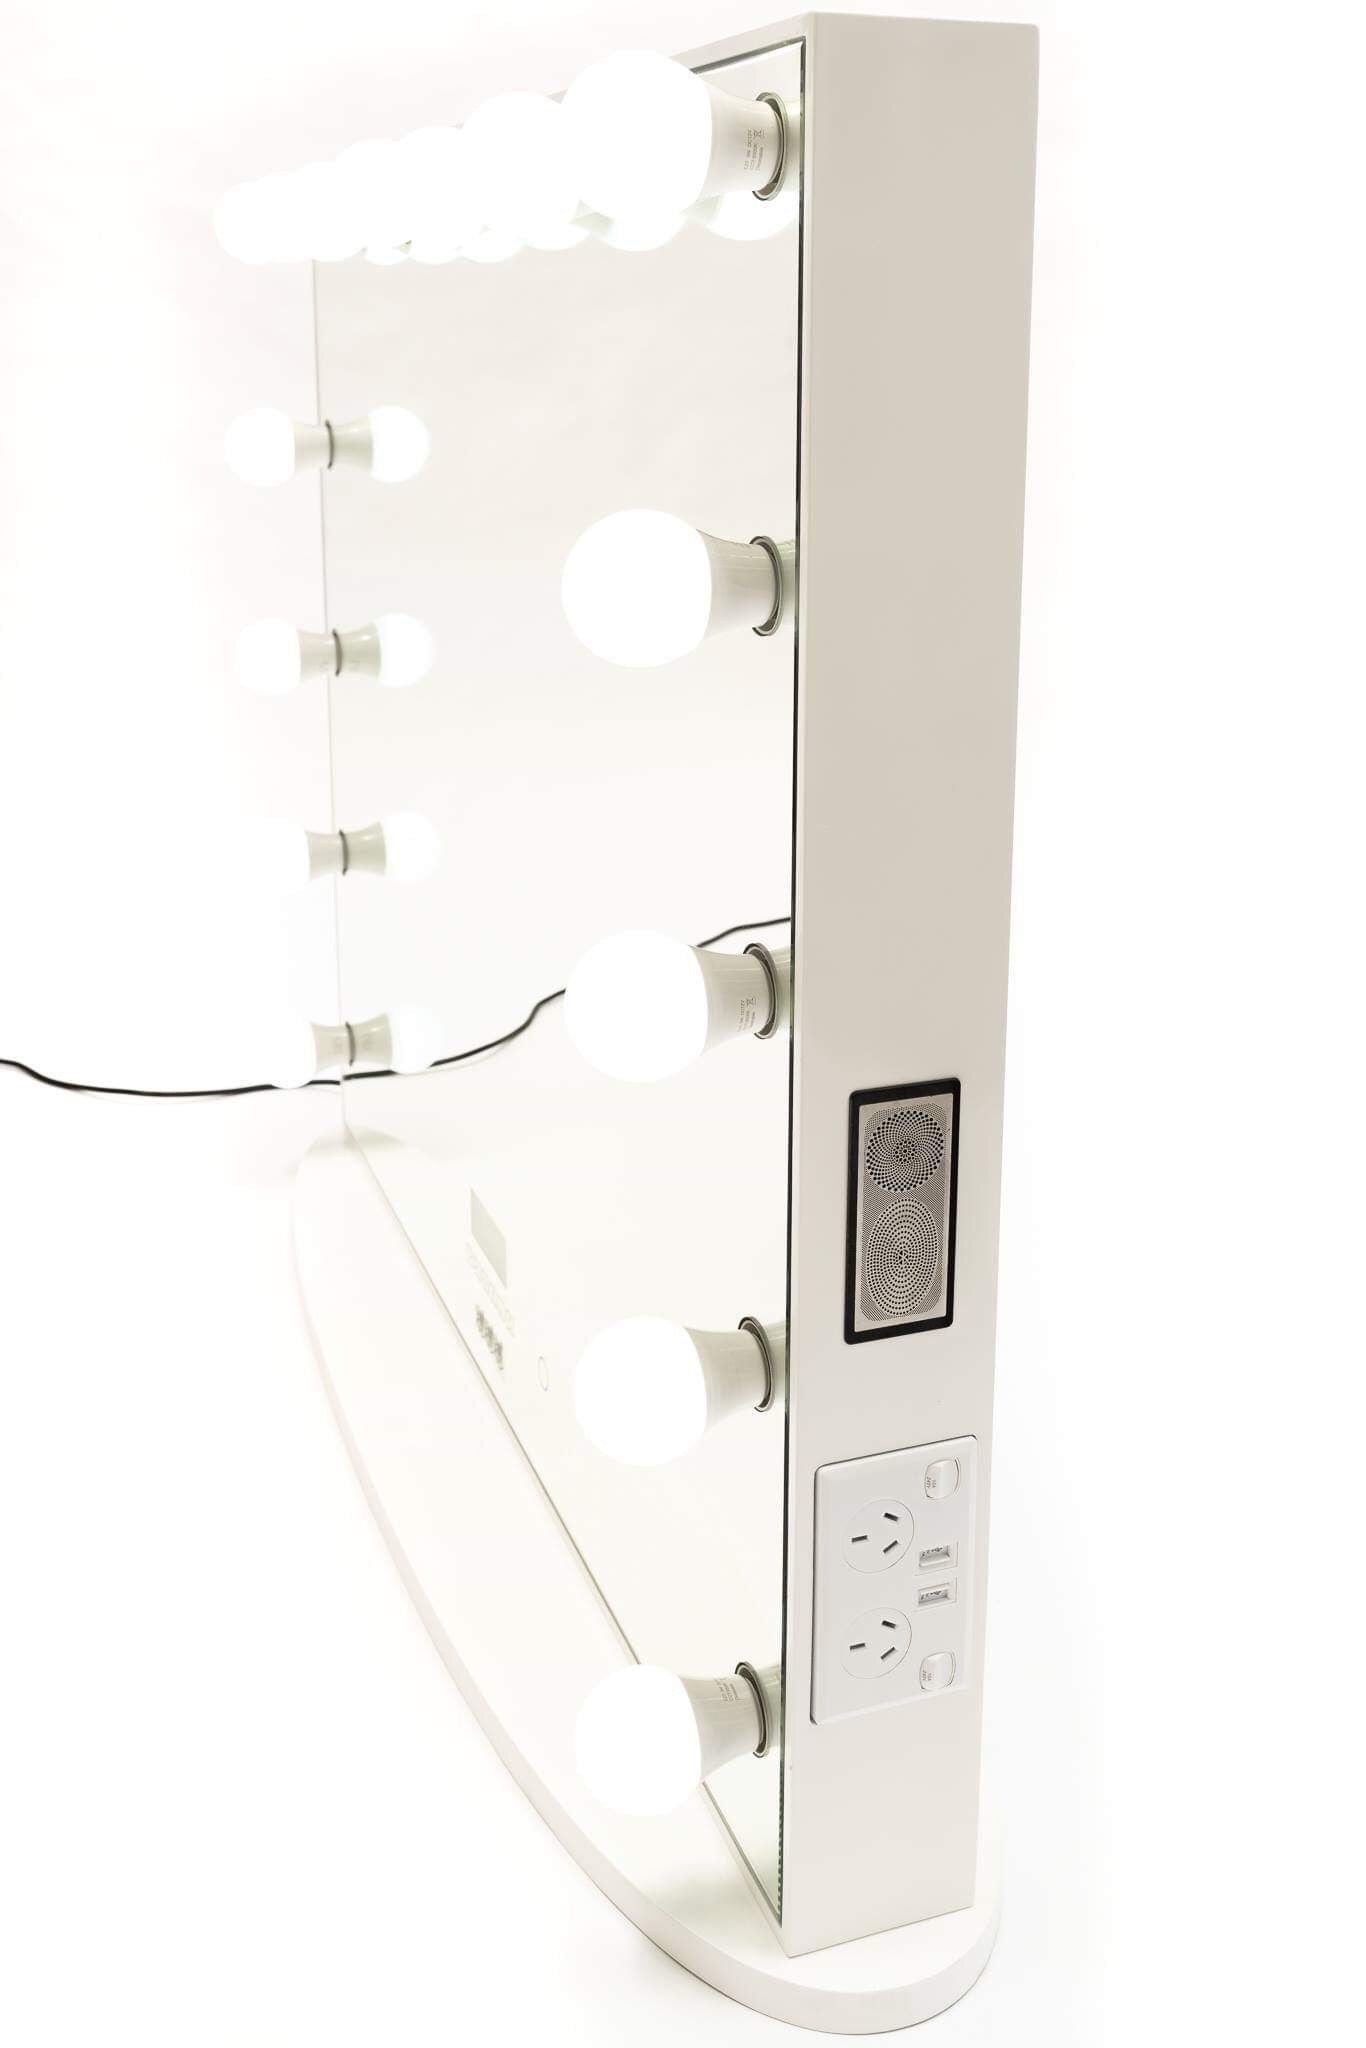 Hollywood Mirror HUGE SIZE XXXL with Bluetooth Speakers, Sensor Dimmer, USB,Power Points-SAME DAY SHIPPING LIMITED STOCK